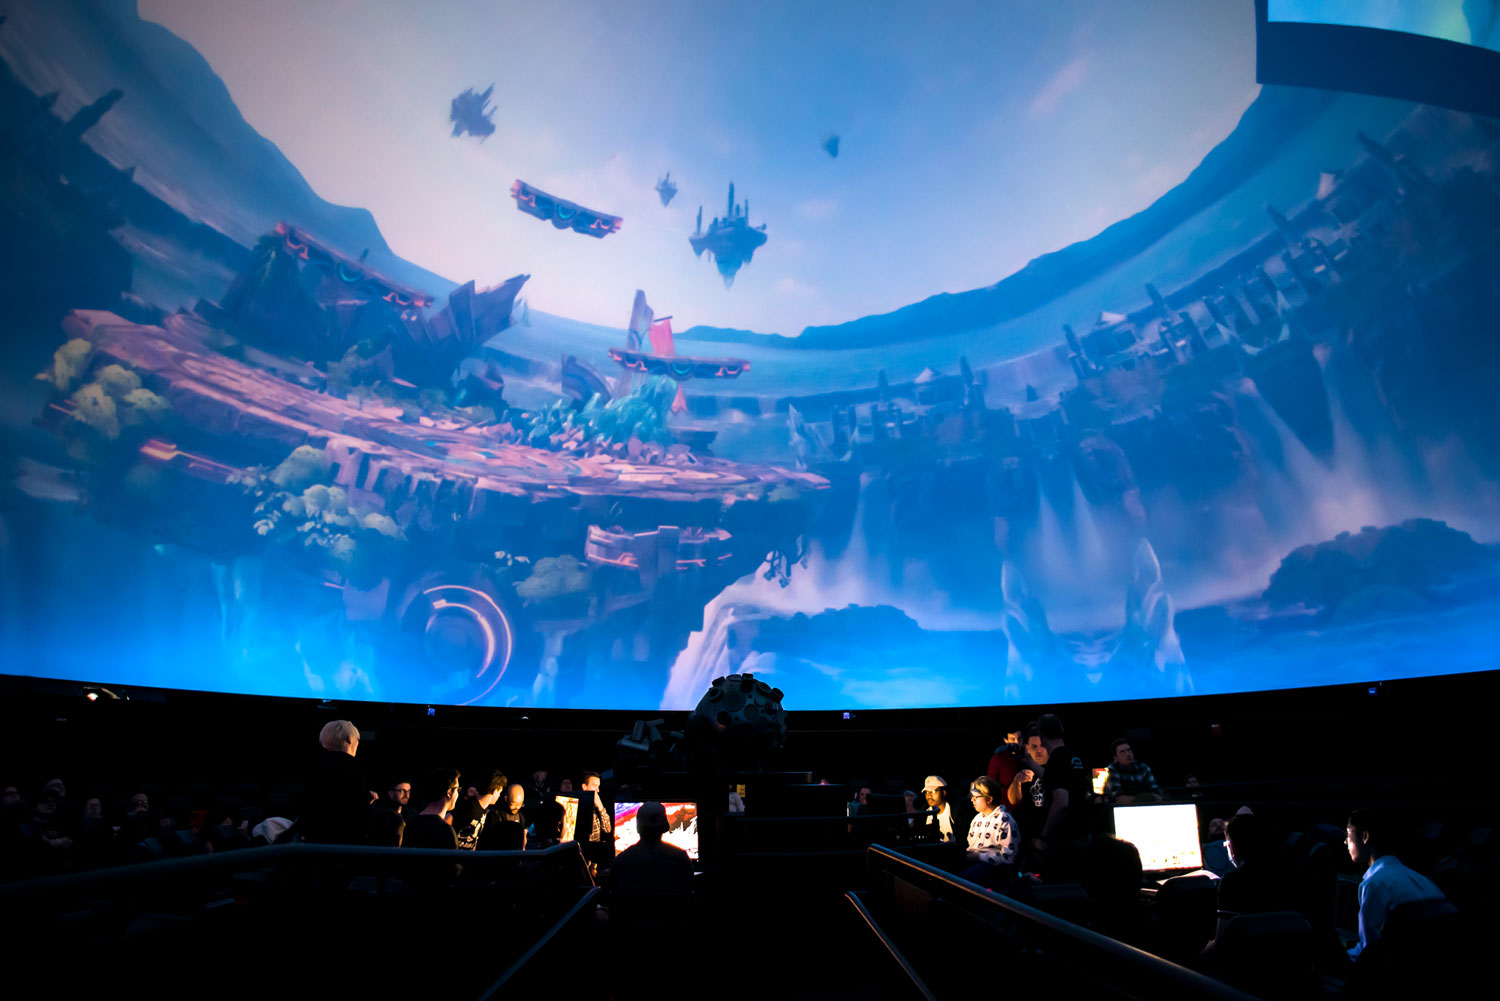 View from within the Omni Theatre in Boston's Museum of Science. A preview of gamers on their laptops in the theatre playing overwatch live on the dome screen above them.